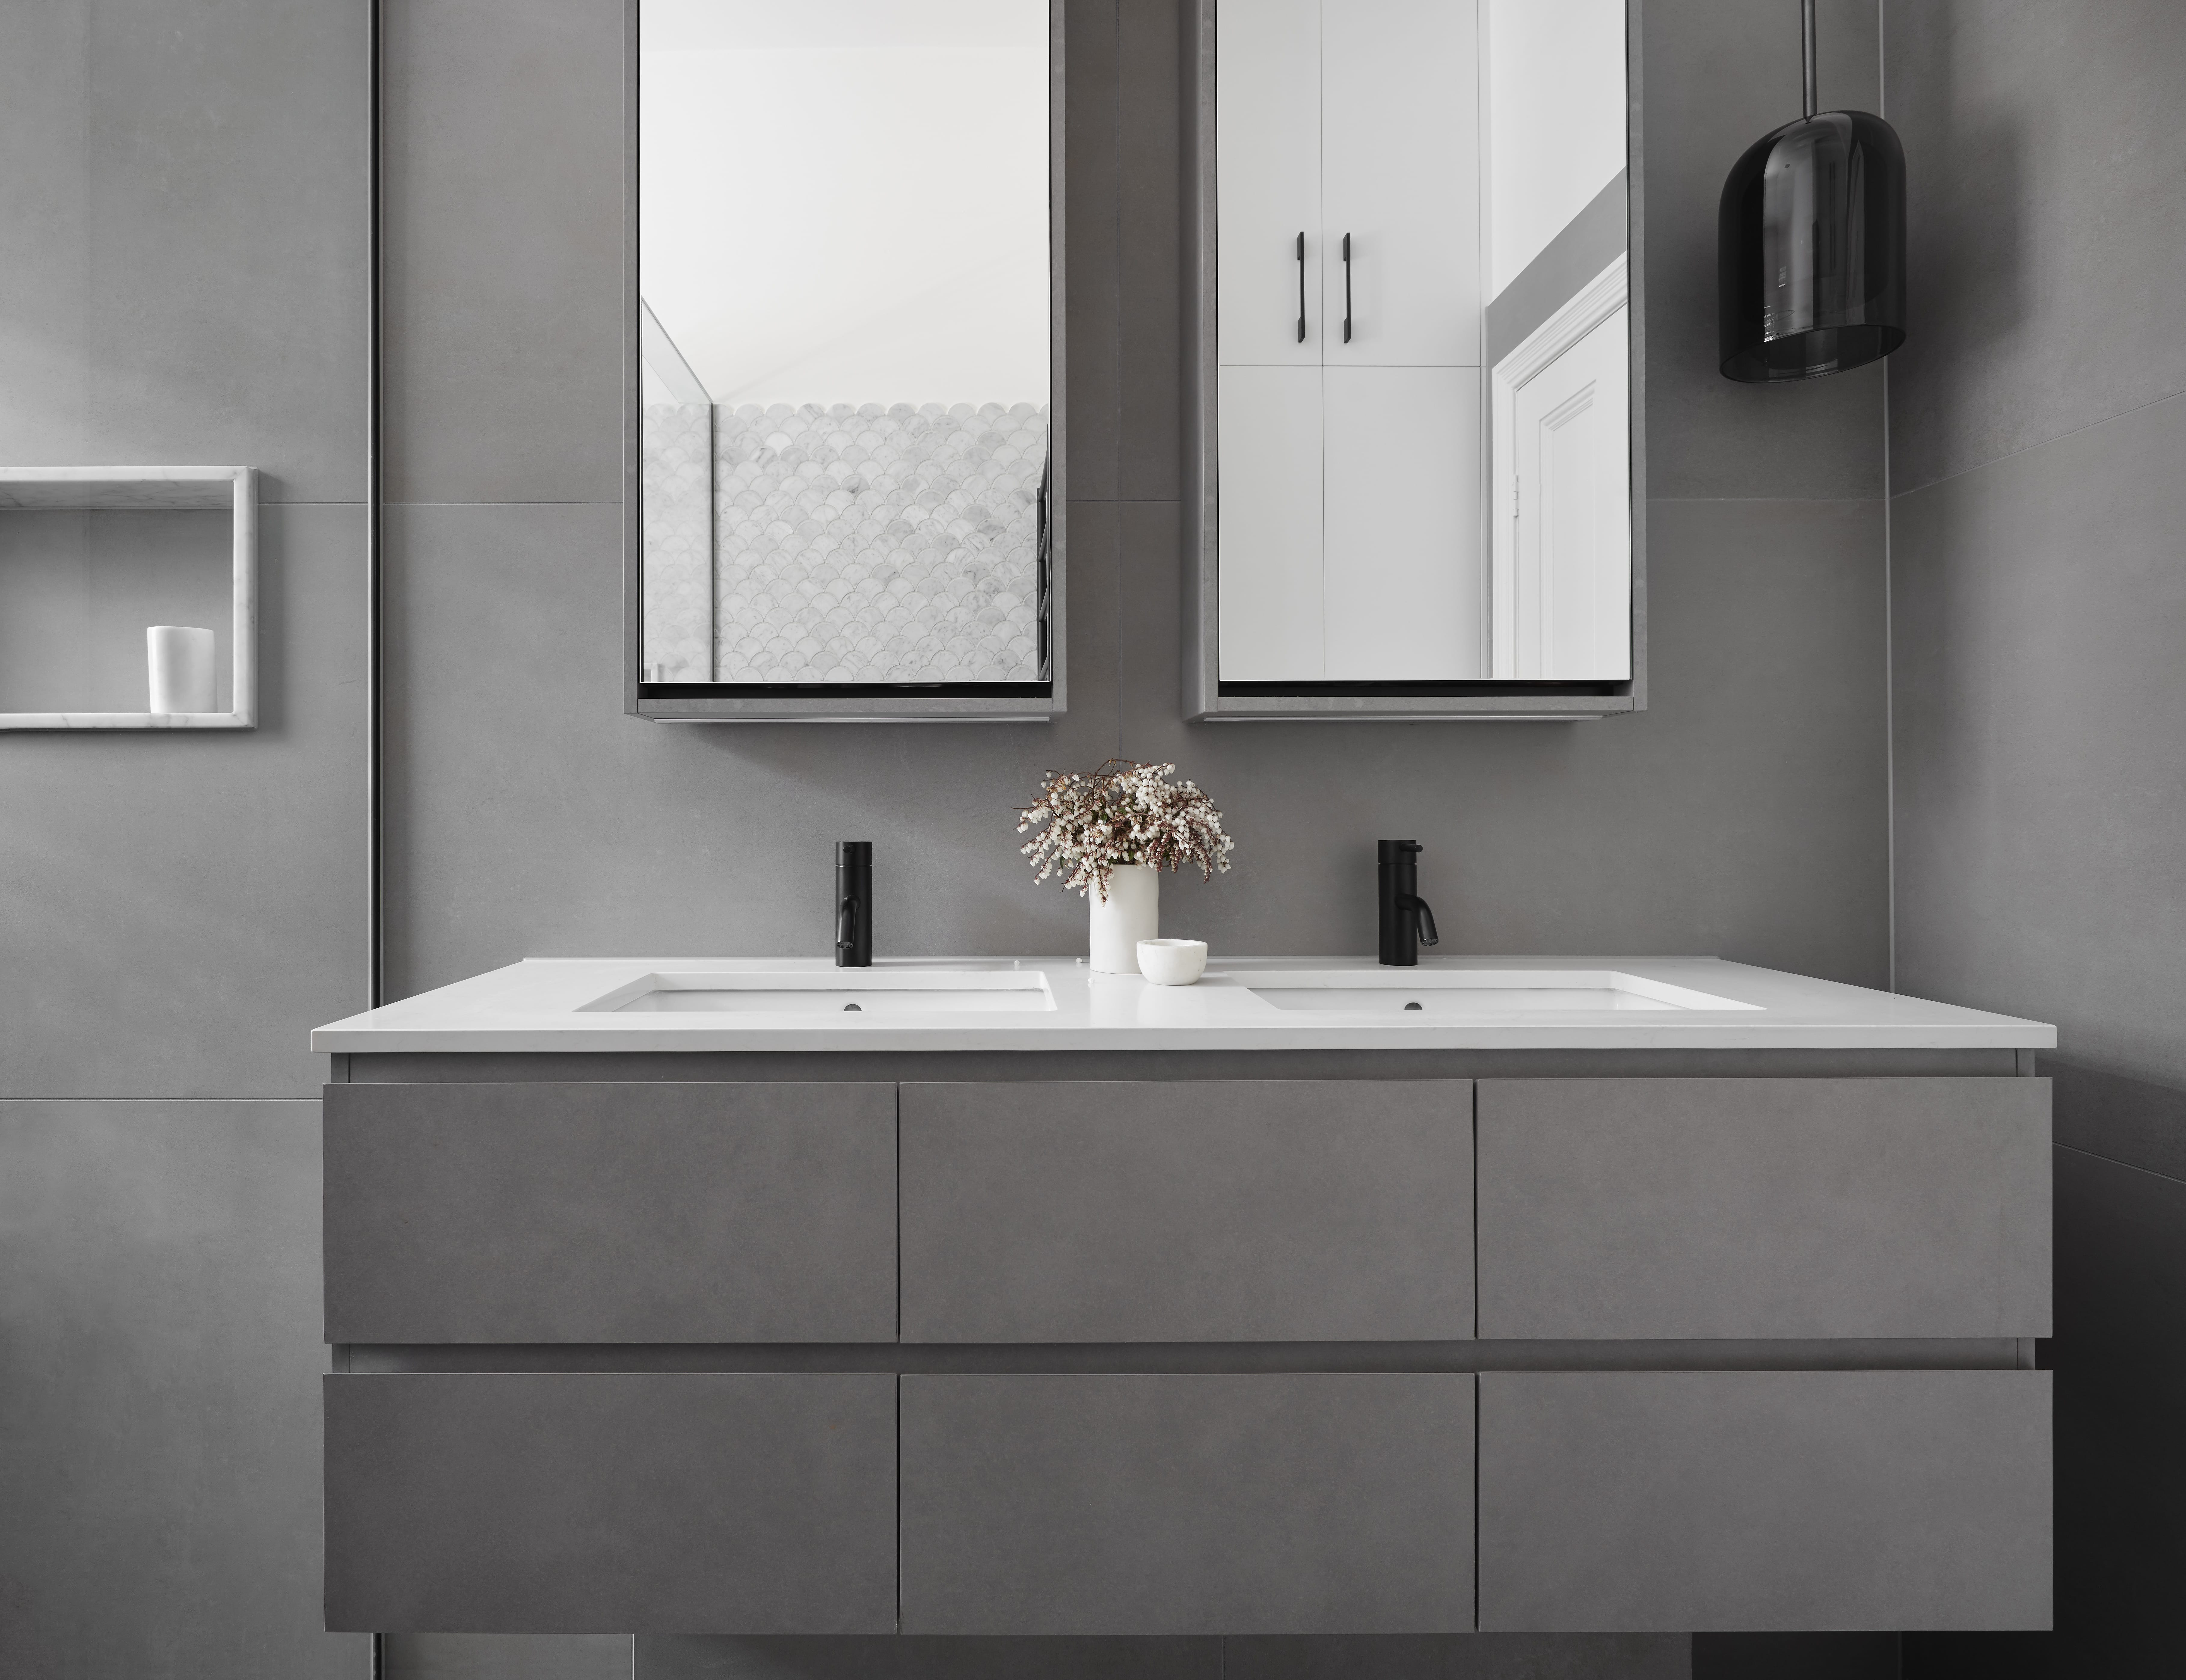 Gallery Of Malvern East Home By Smarter Bathrooms+ Local Design And Interiors Malvern East, Vic Image 3